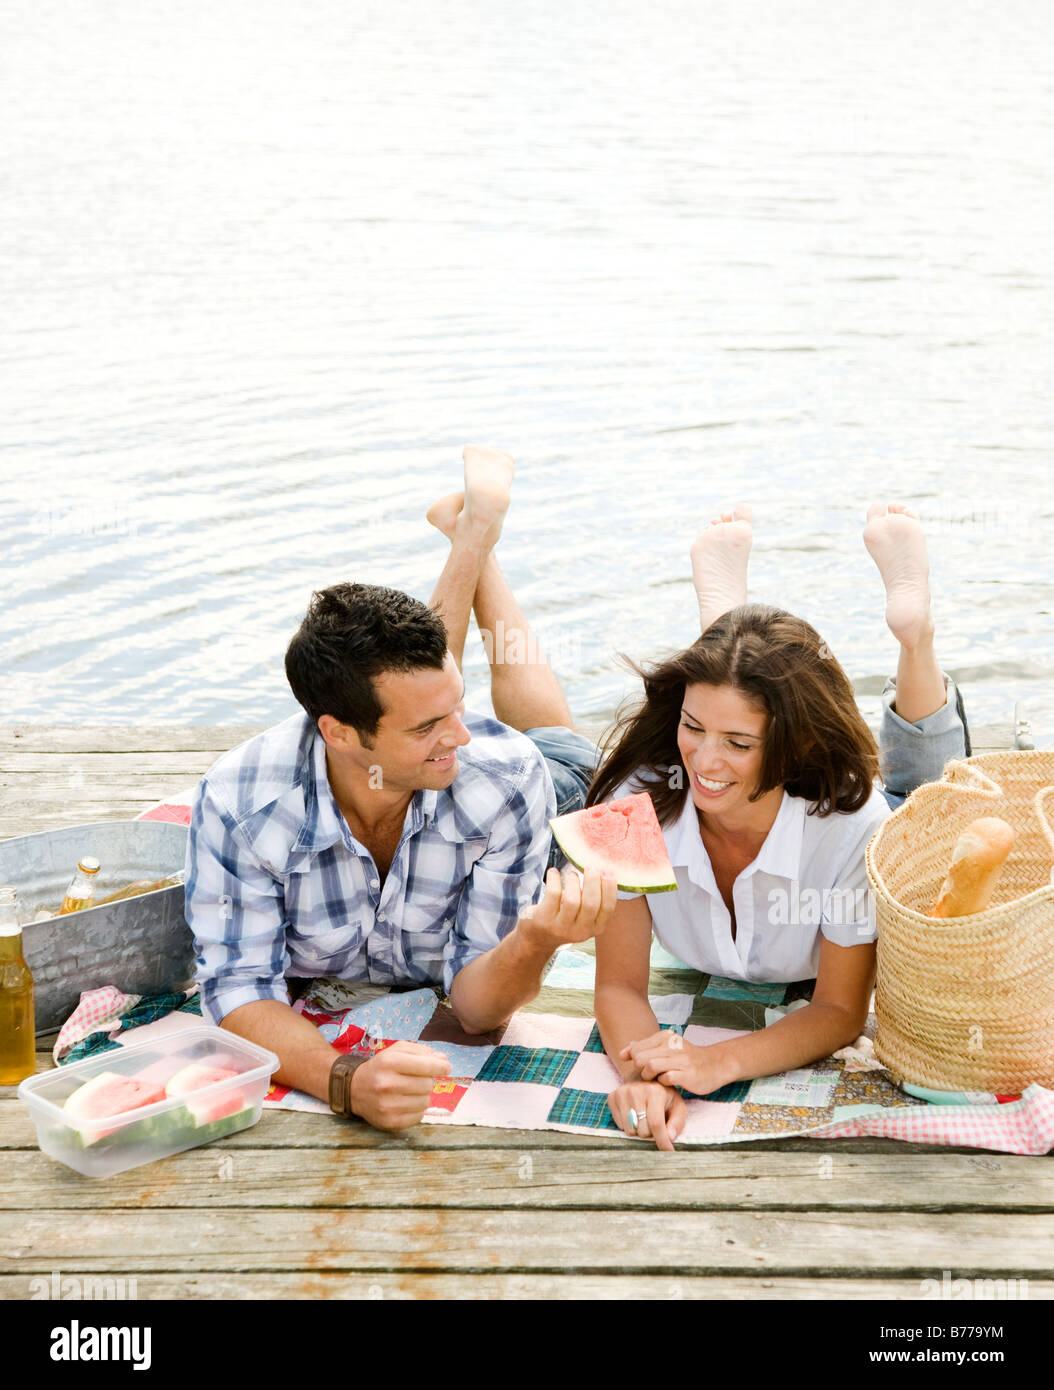 Couple picnicking on dock - Stock Image